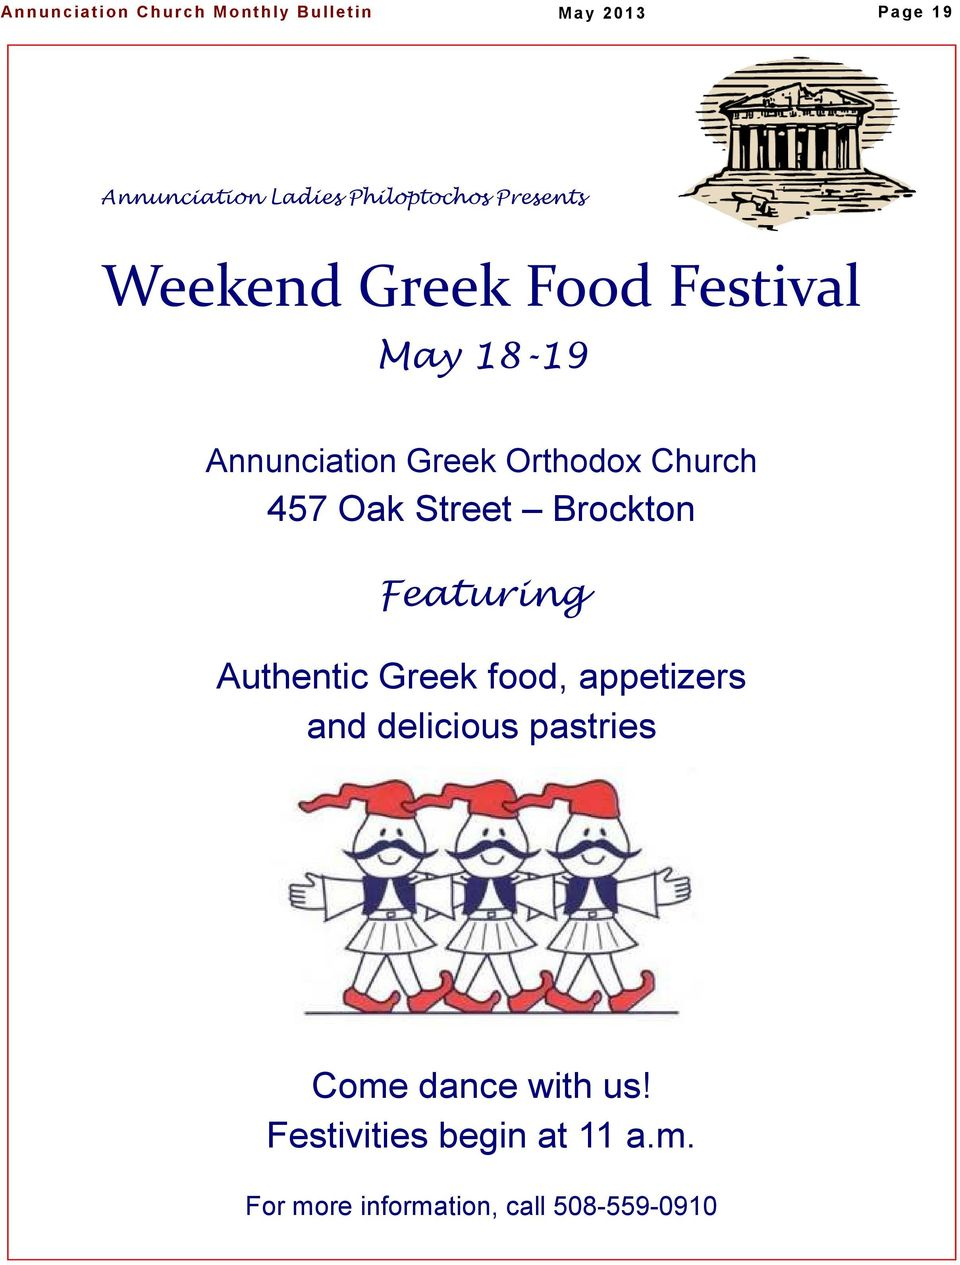 Church 457 Oak Street Brockton Featuring Authentic Greek food, appetizers and delicious